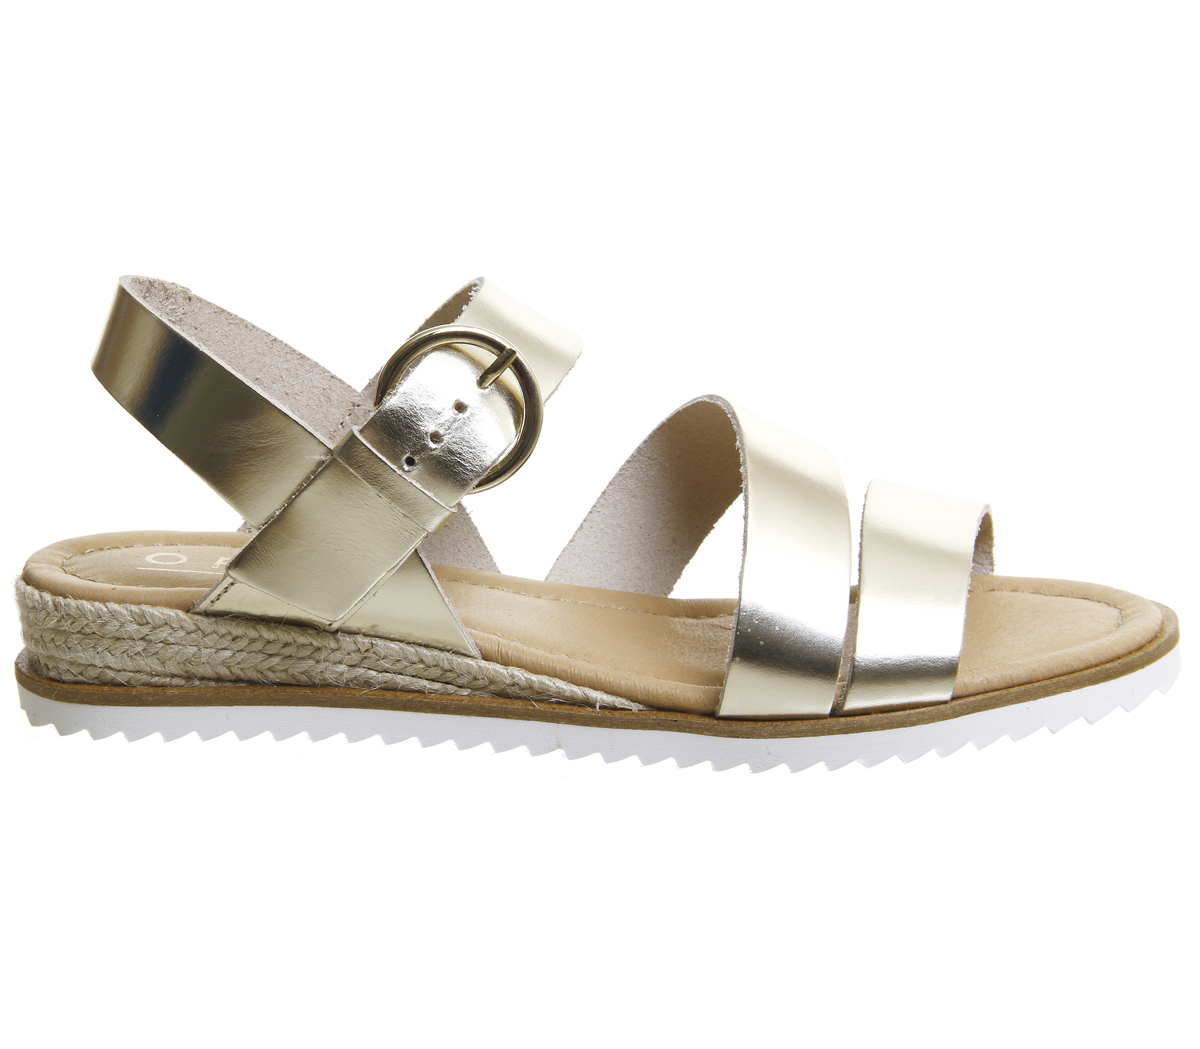 Leather Womens Strap Office Ankle Gold Sandals Saltlake fYYPqwBxZ